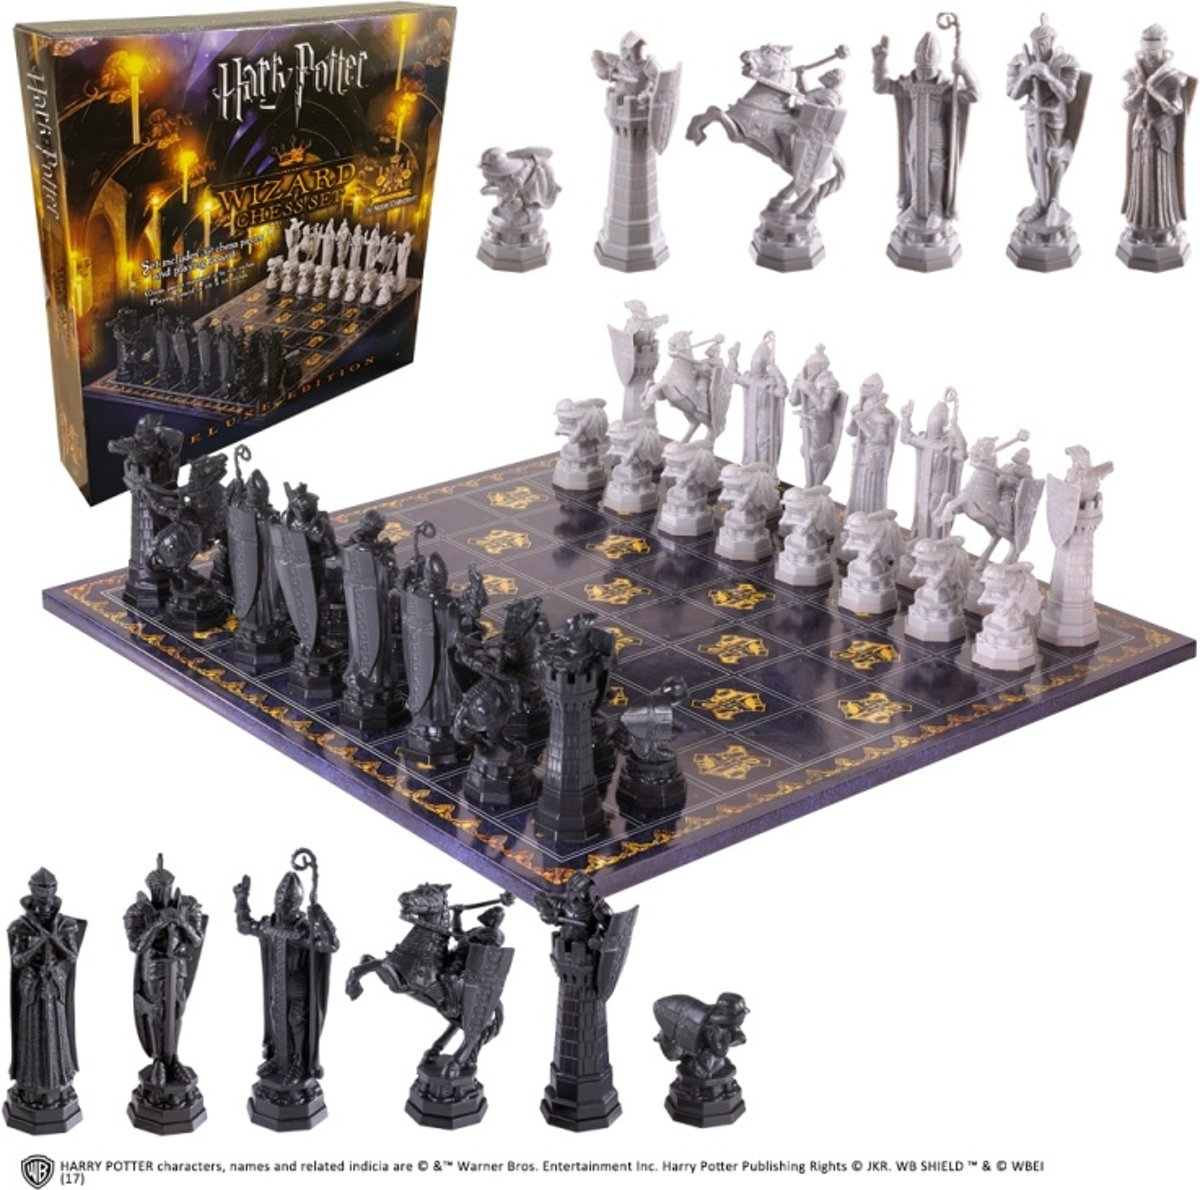 Harry Potter Wizard's Chess Set Deluxe Edition